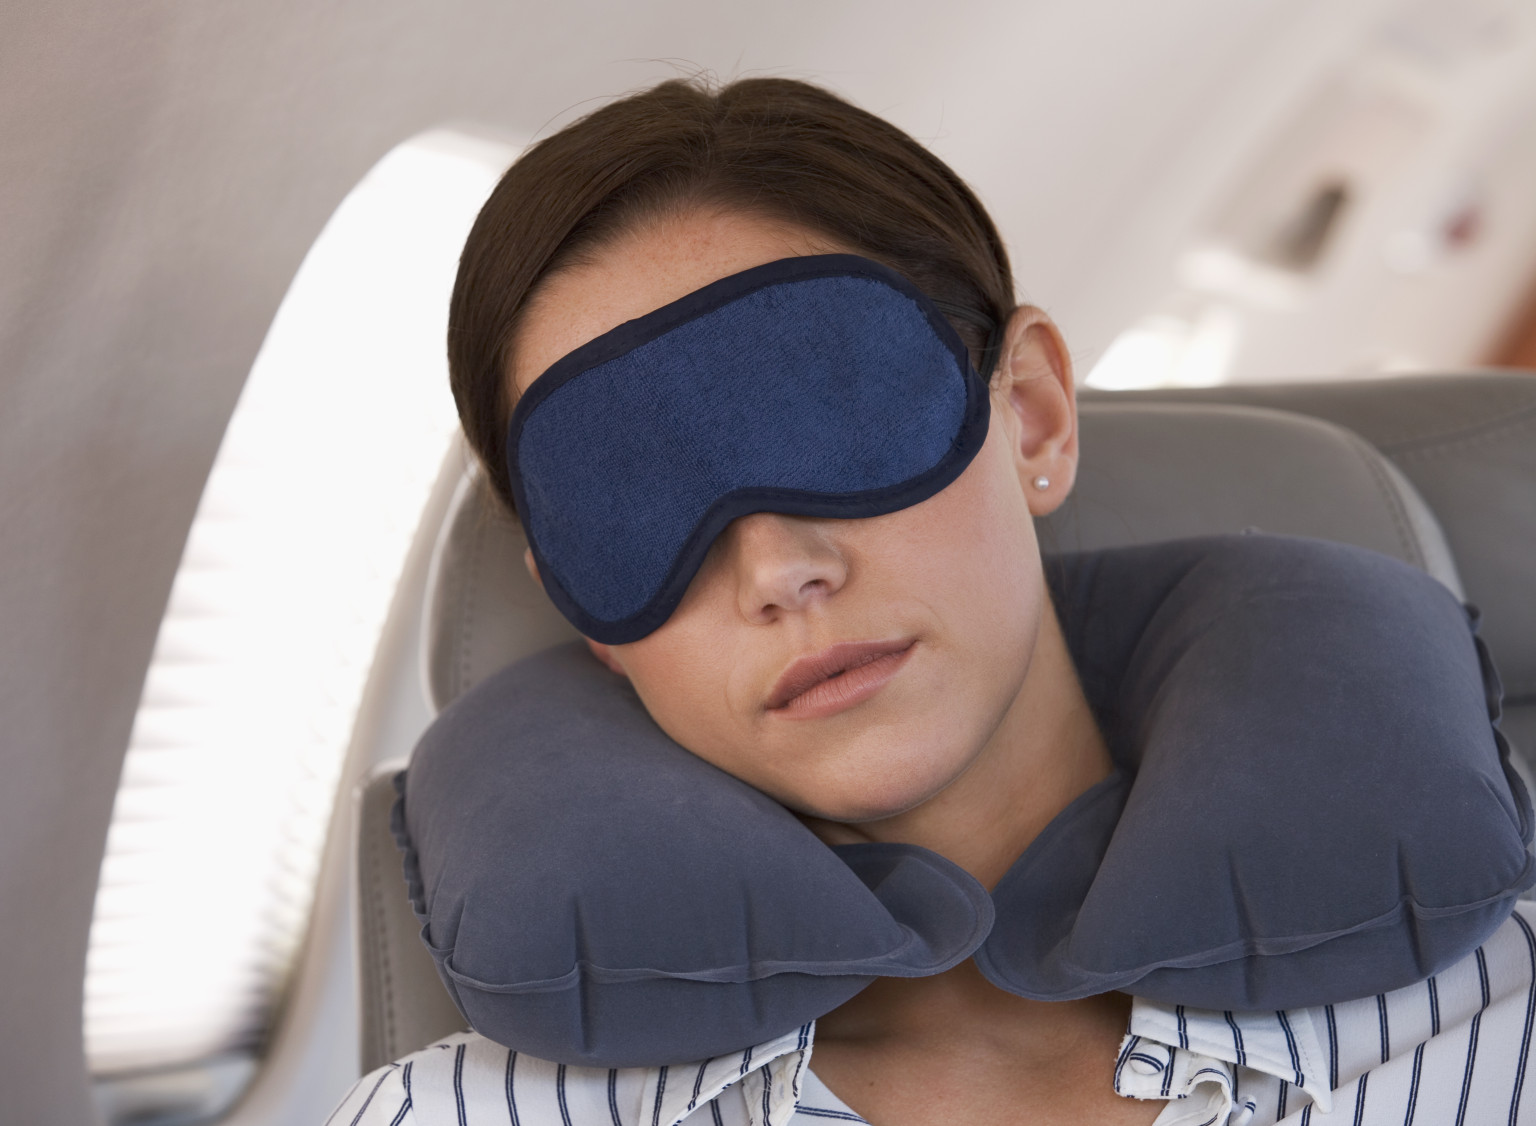 Best Pillow And Blanket For Travel